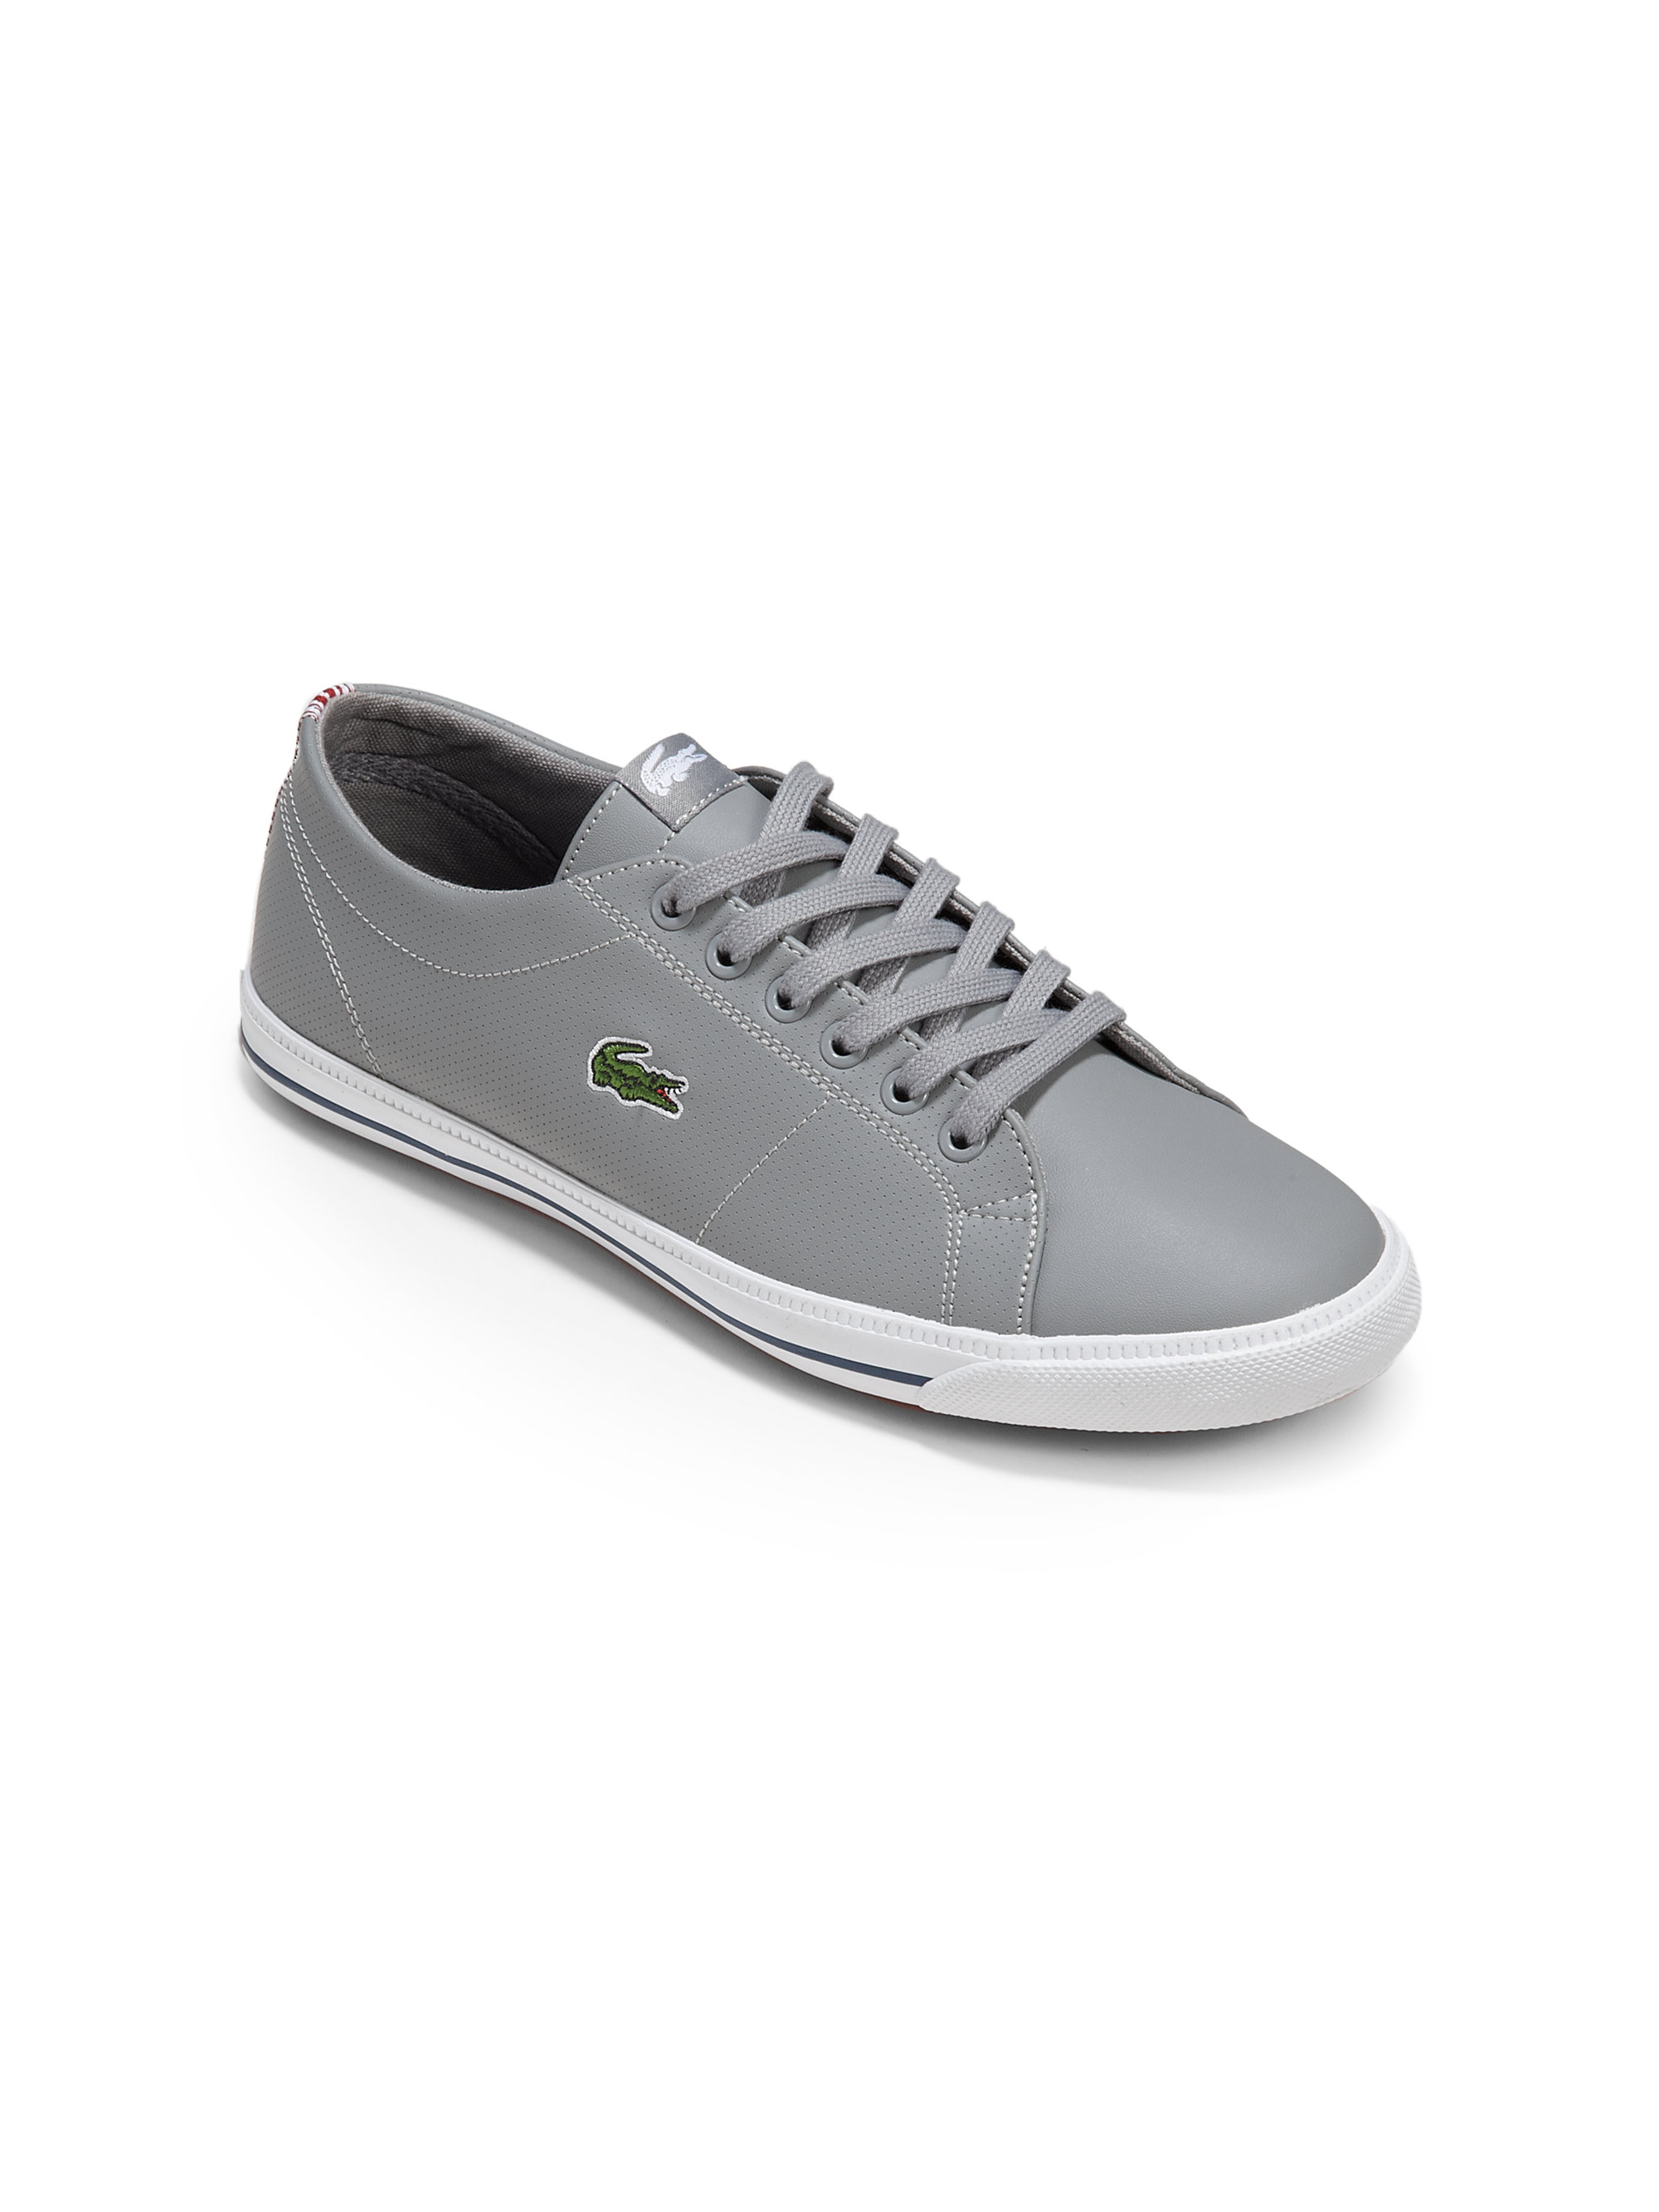 lyst lacoste boys leather sneakers in gray for men